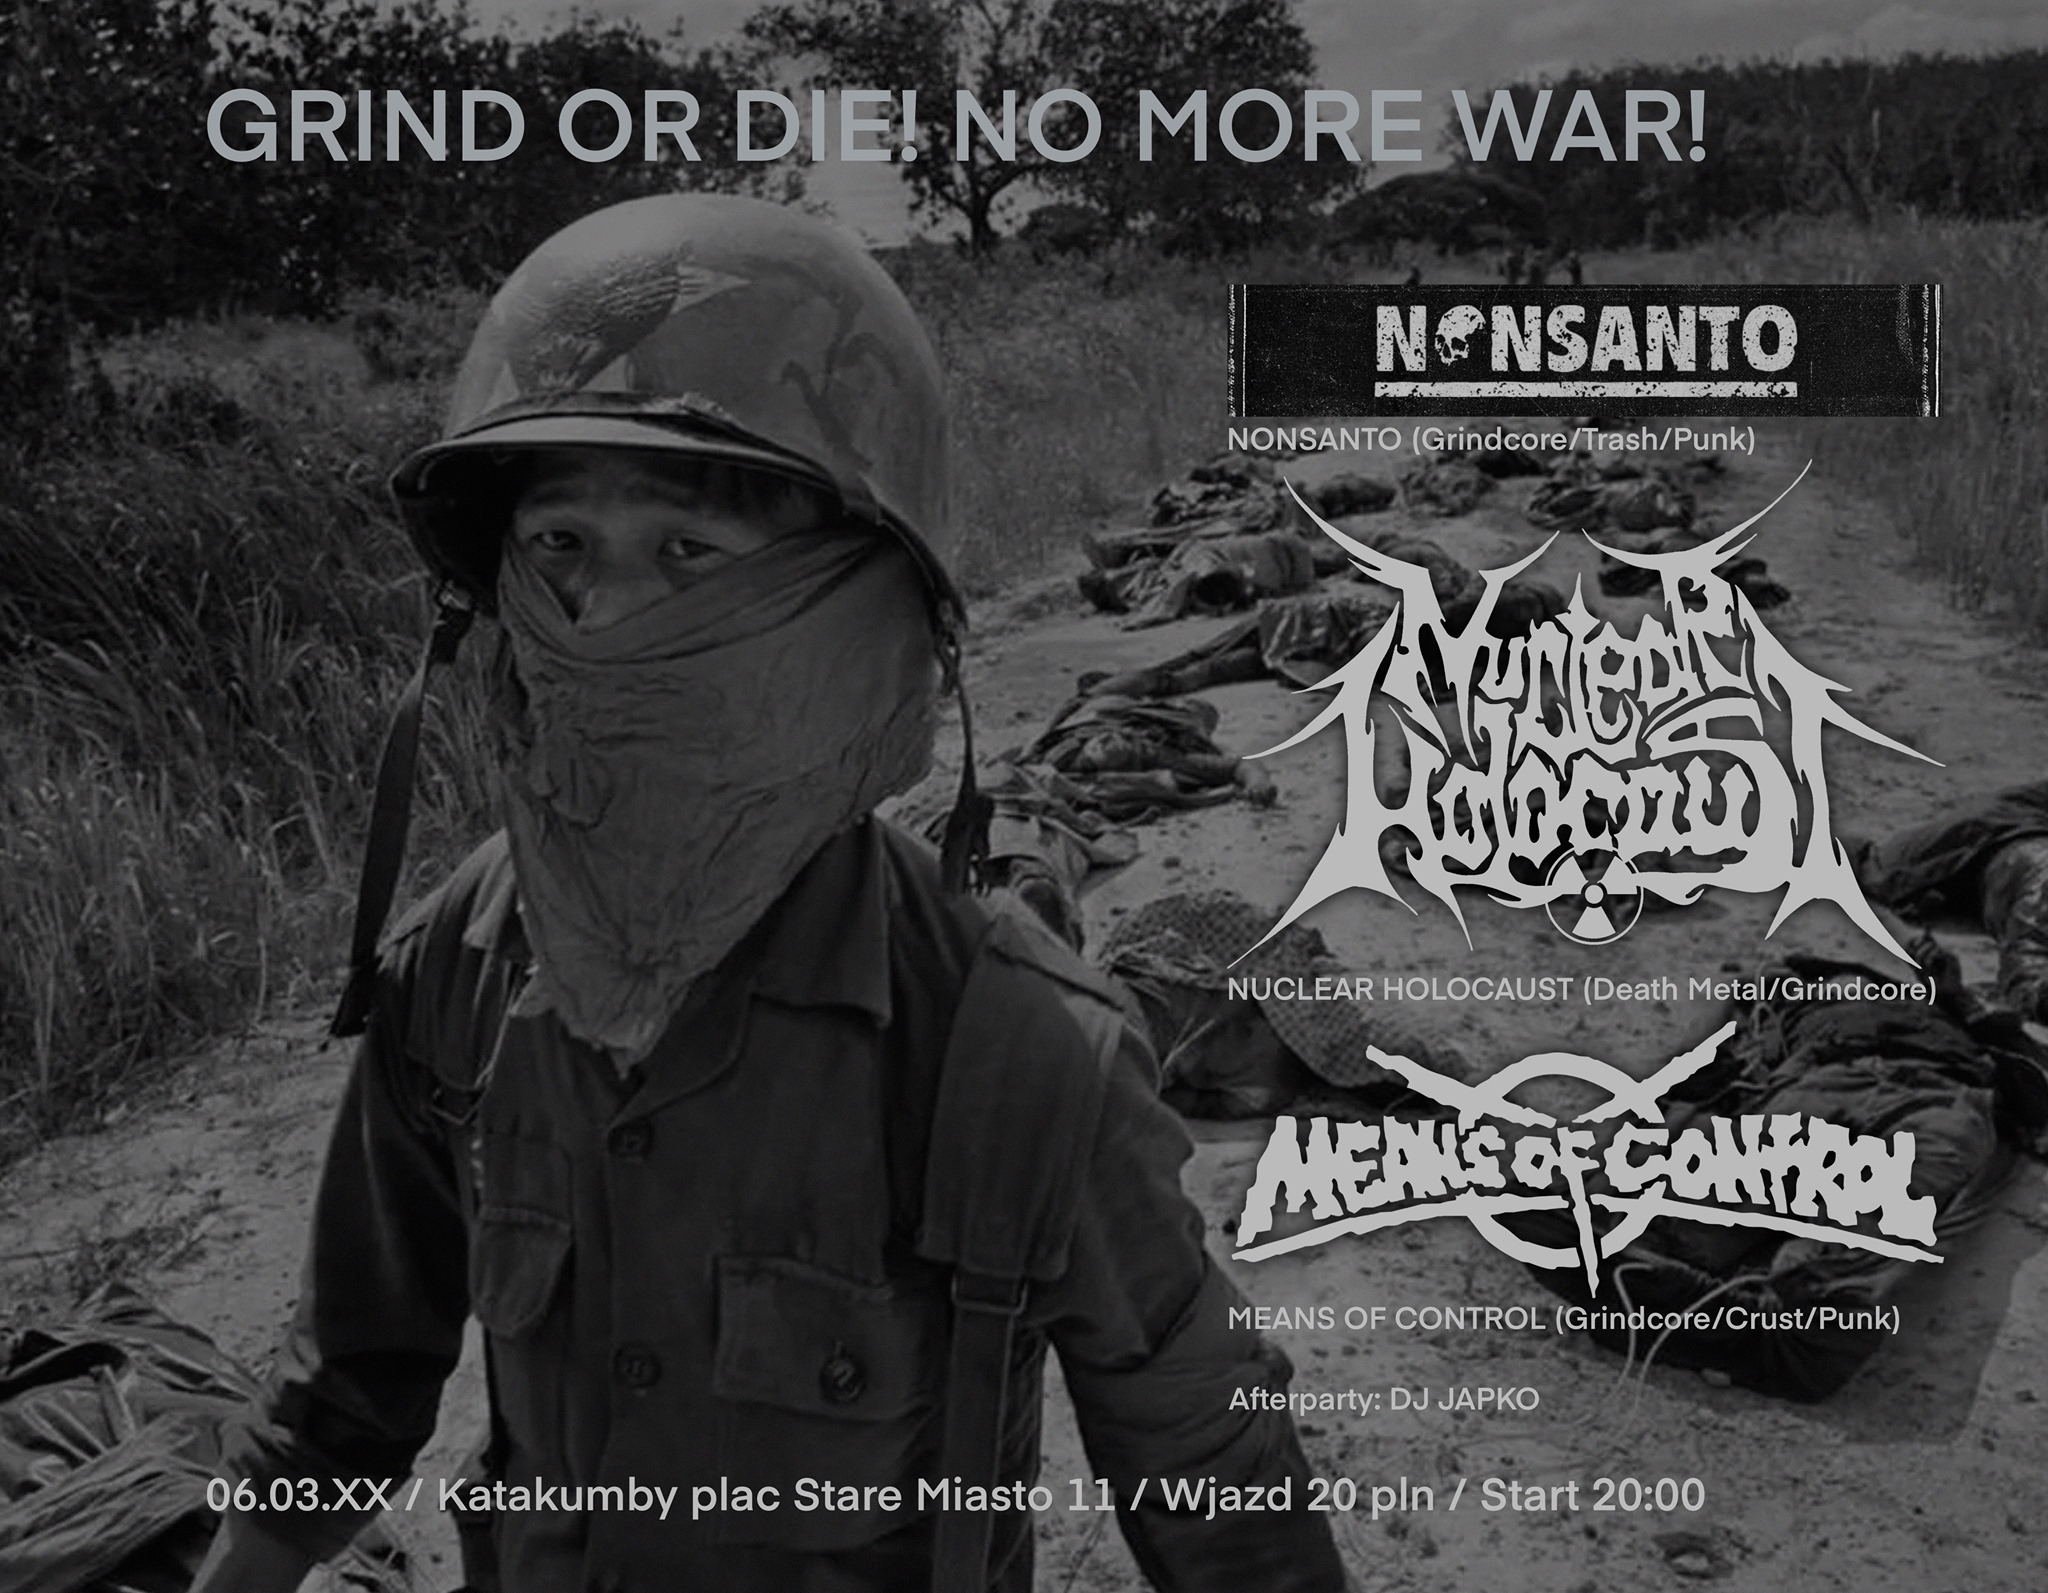 Grind or Die! No More War!